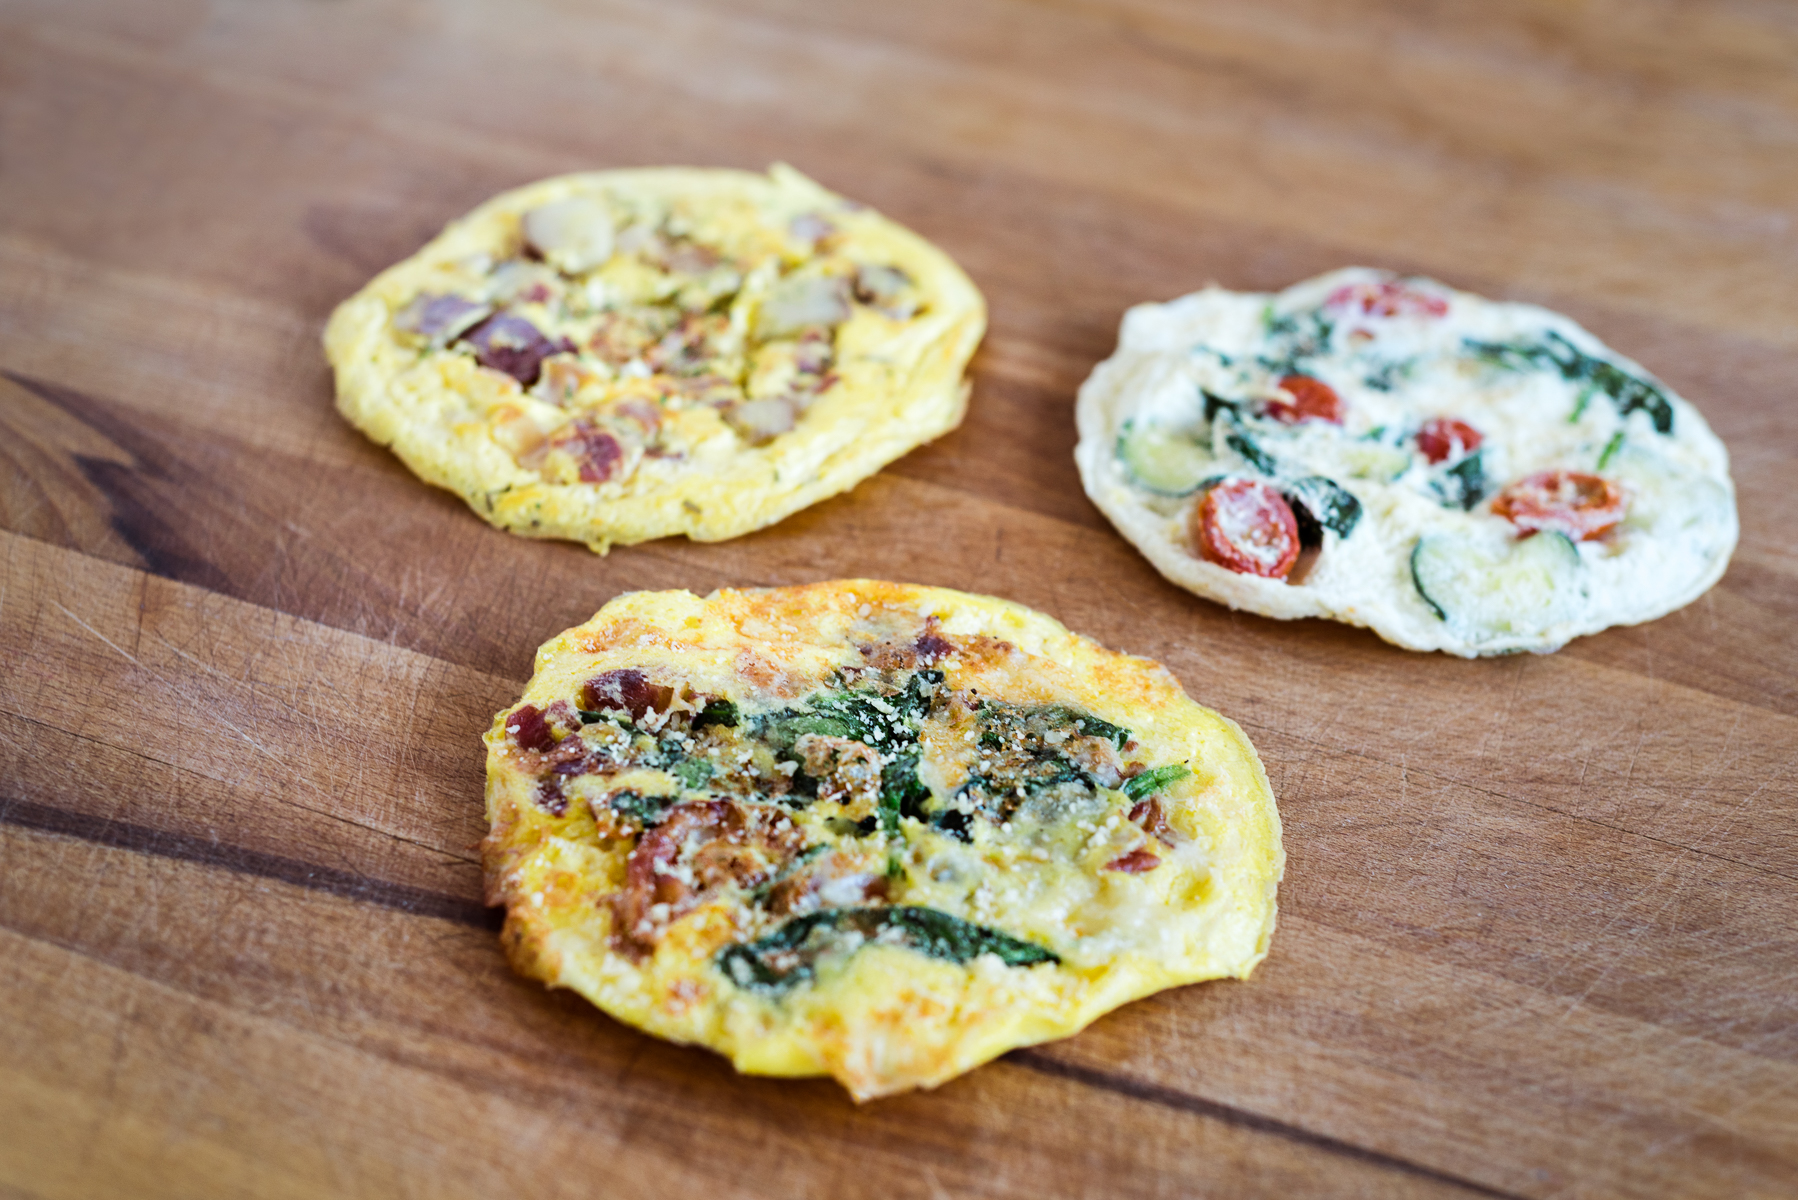 Omelettes from Mici Handcrafted Italian in Denver, CO.